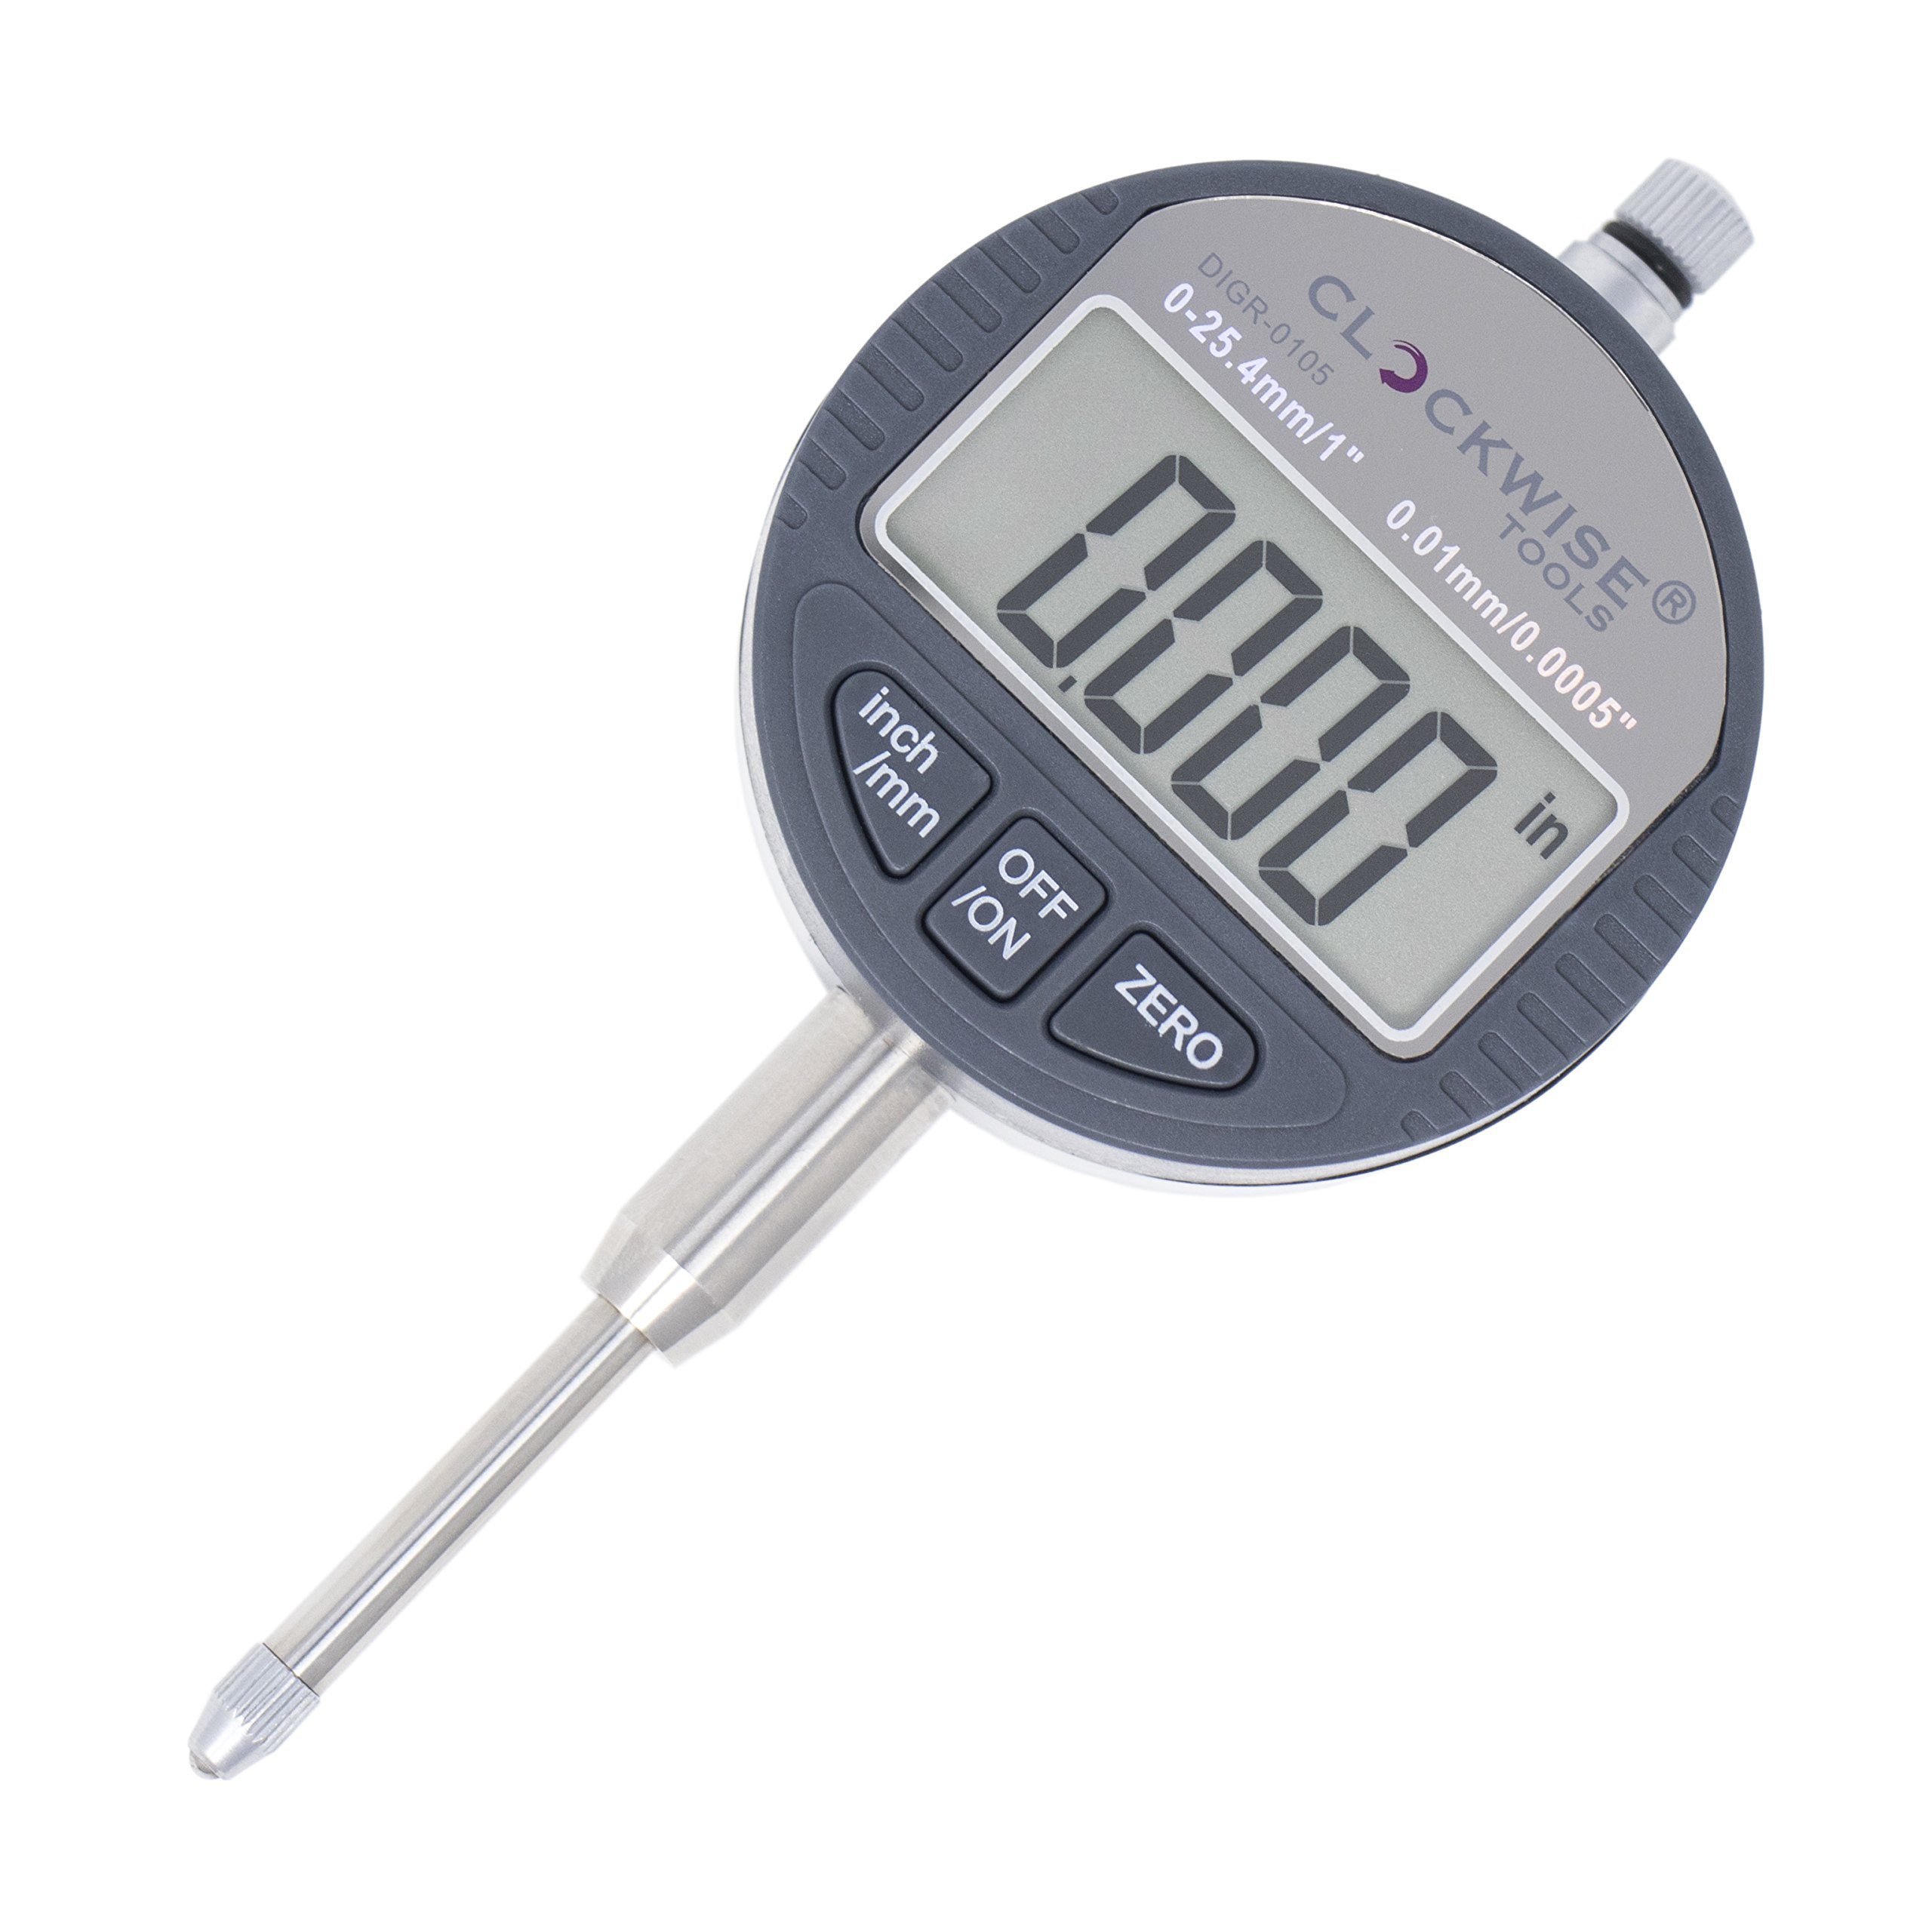 Clockwise Tools DIGR-0105 Electronic Digital Dial Indicator Gage Gauge Inch/Metric Conversion 0-1 Inch/25.4 mm with Back Lug Auto Off Featured Measuring Tool